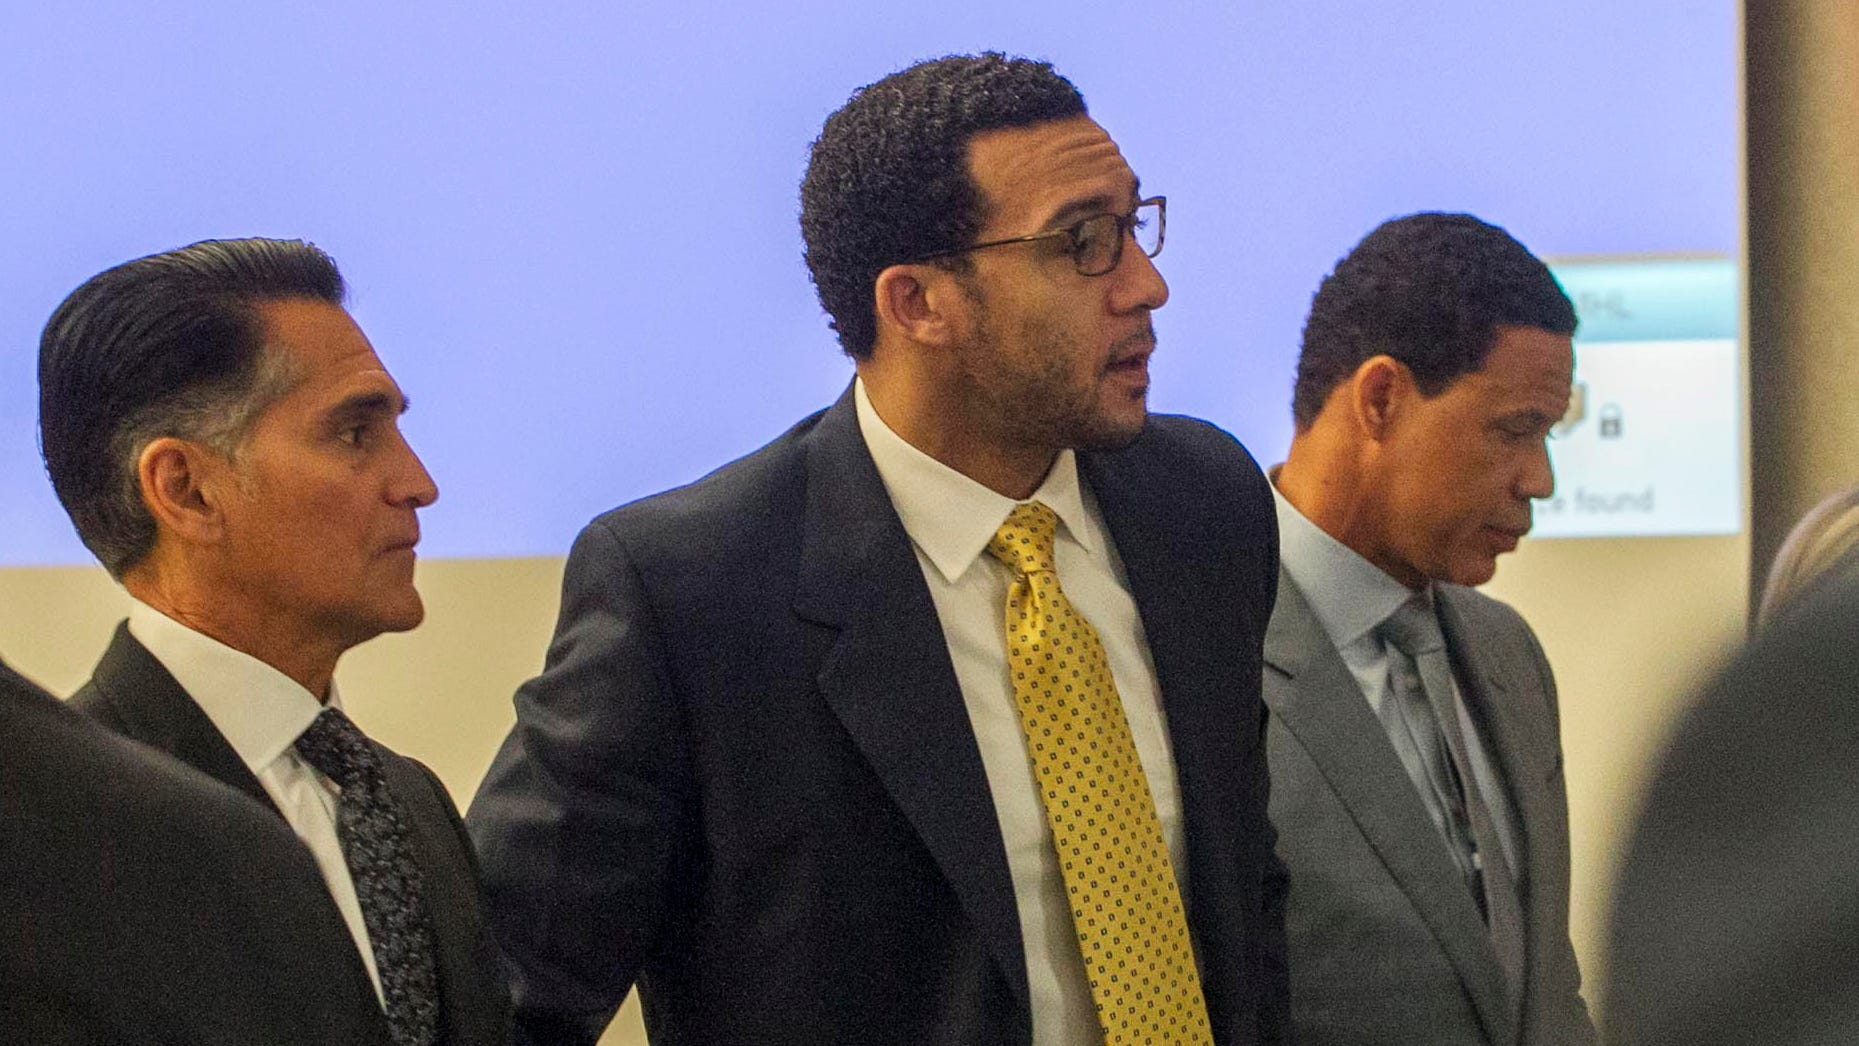 Kellen Winslow is flanked by his attorneys, Brian Watkins (right) and Marc Carlo.